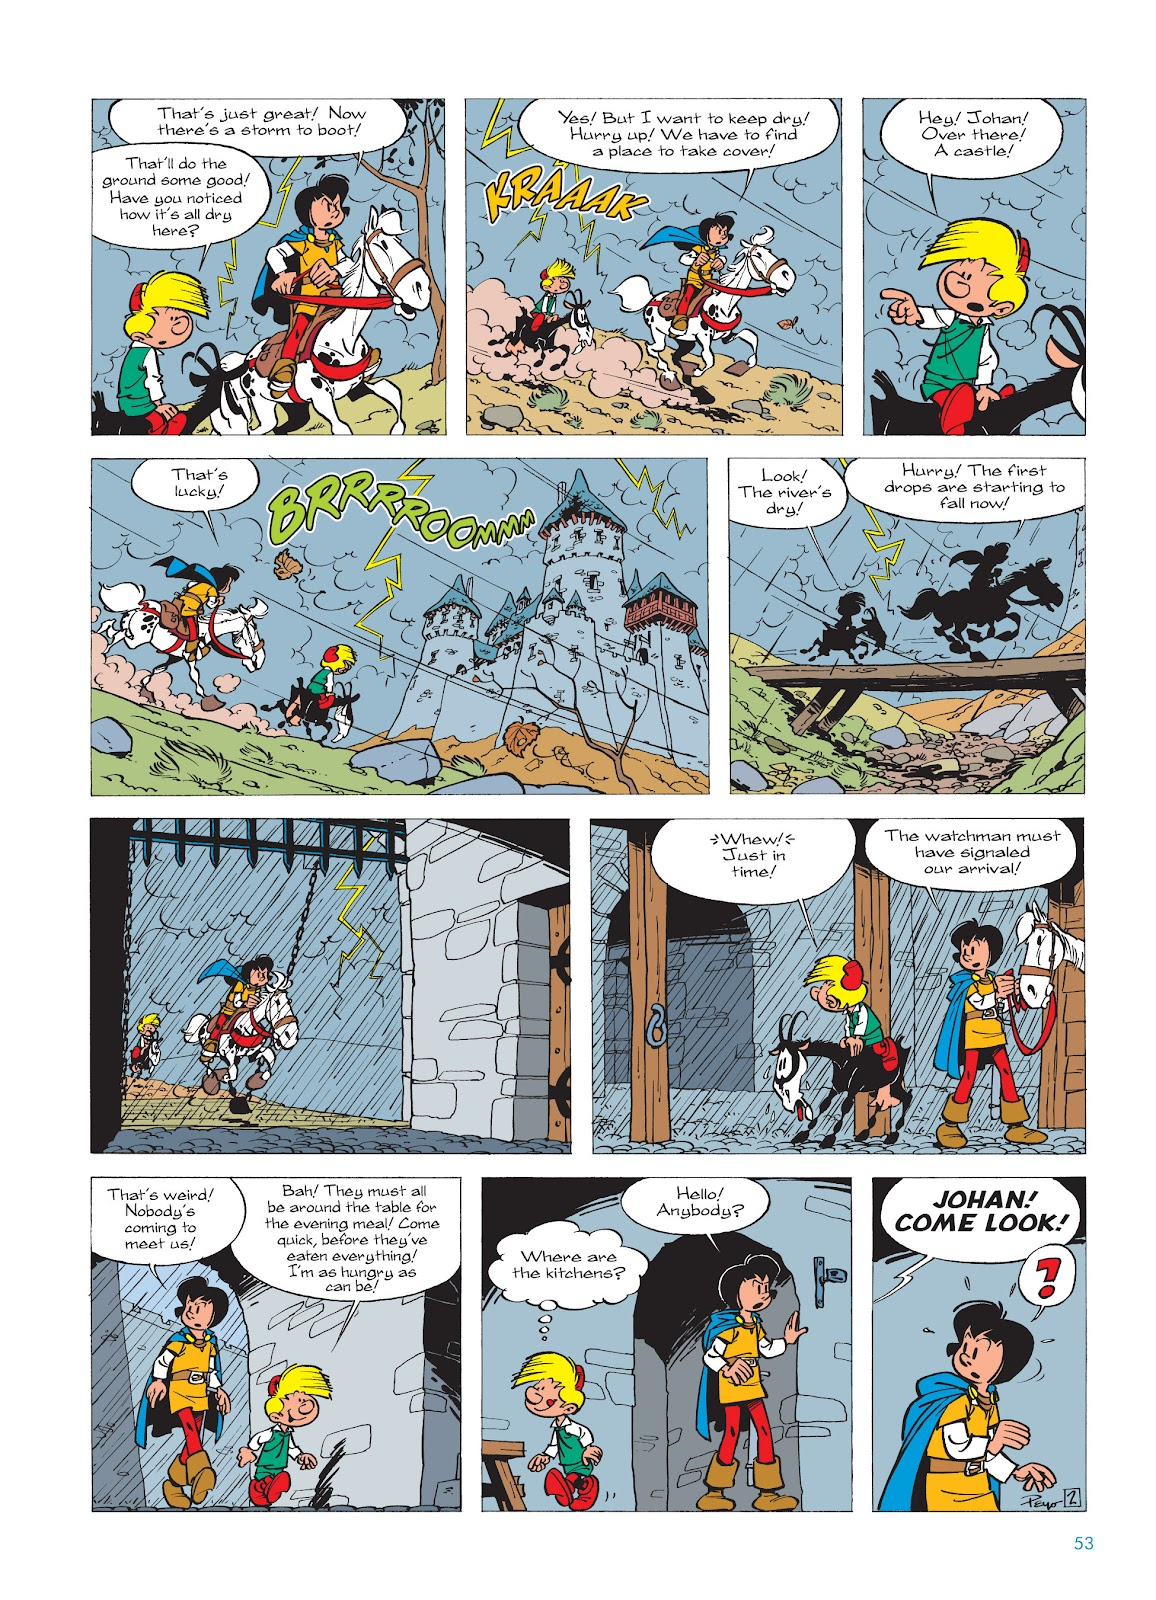 Read online The Smurfs comic -  Issue #17 - 53